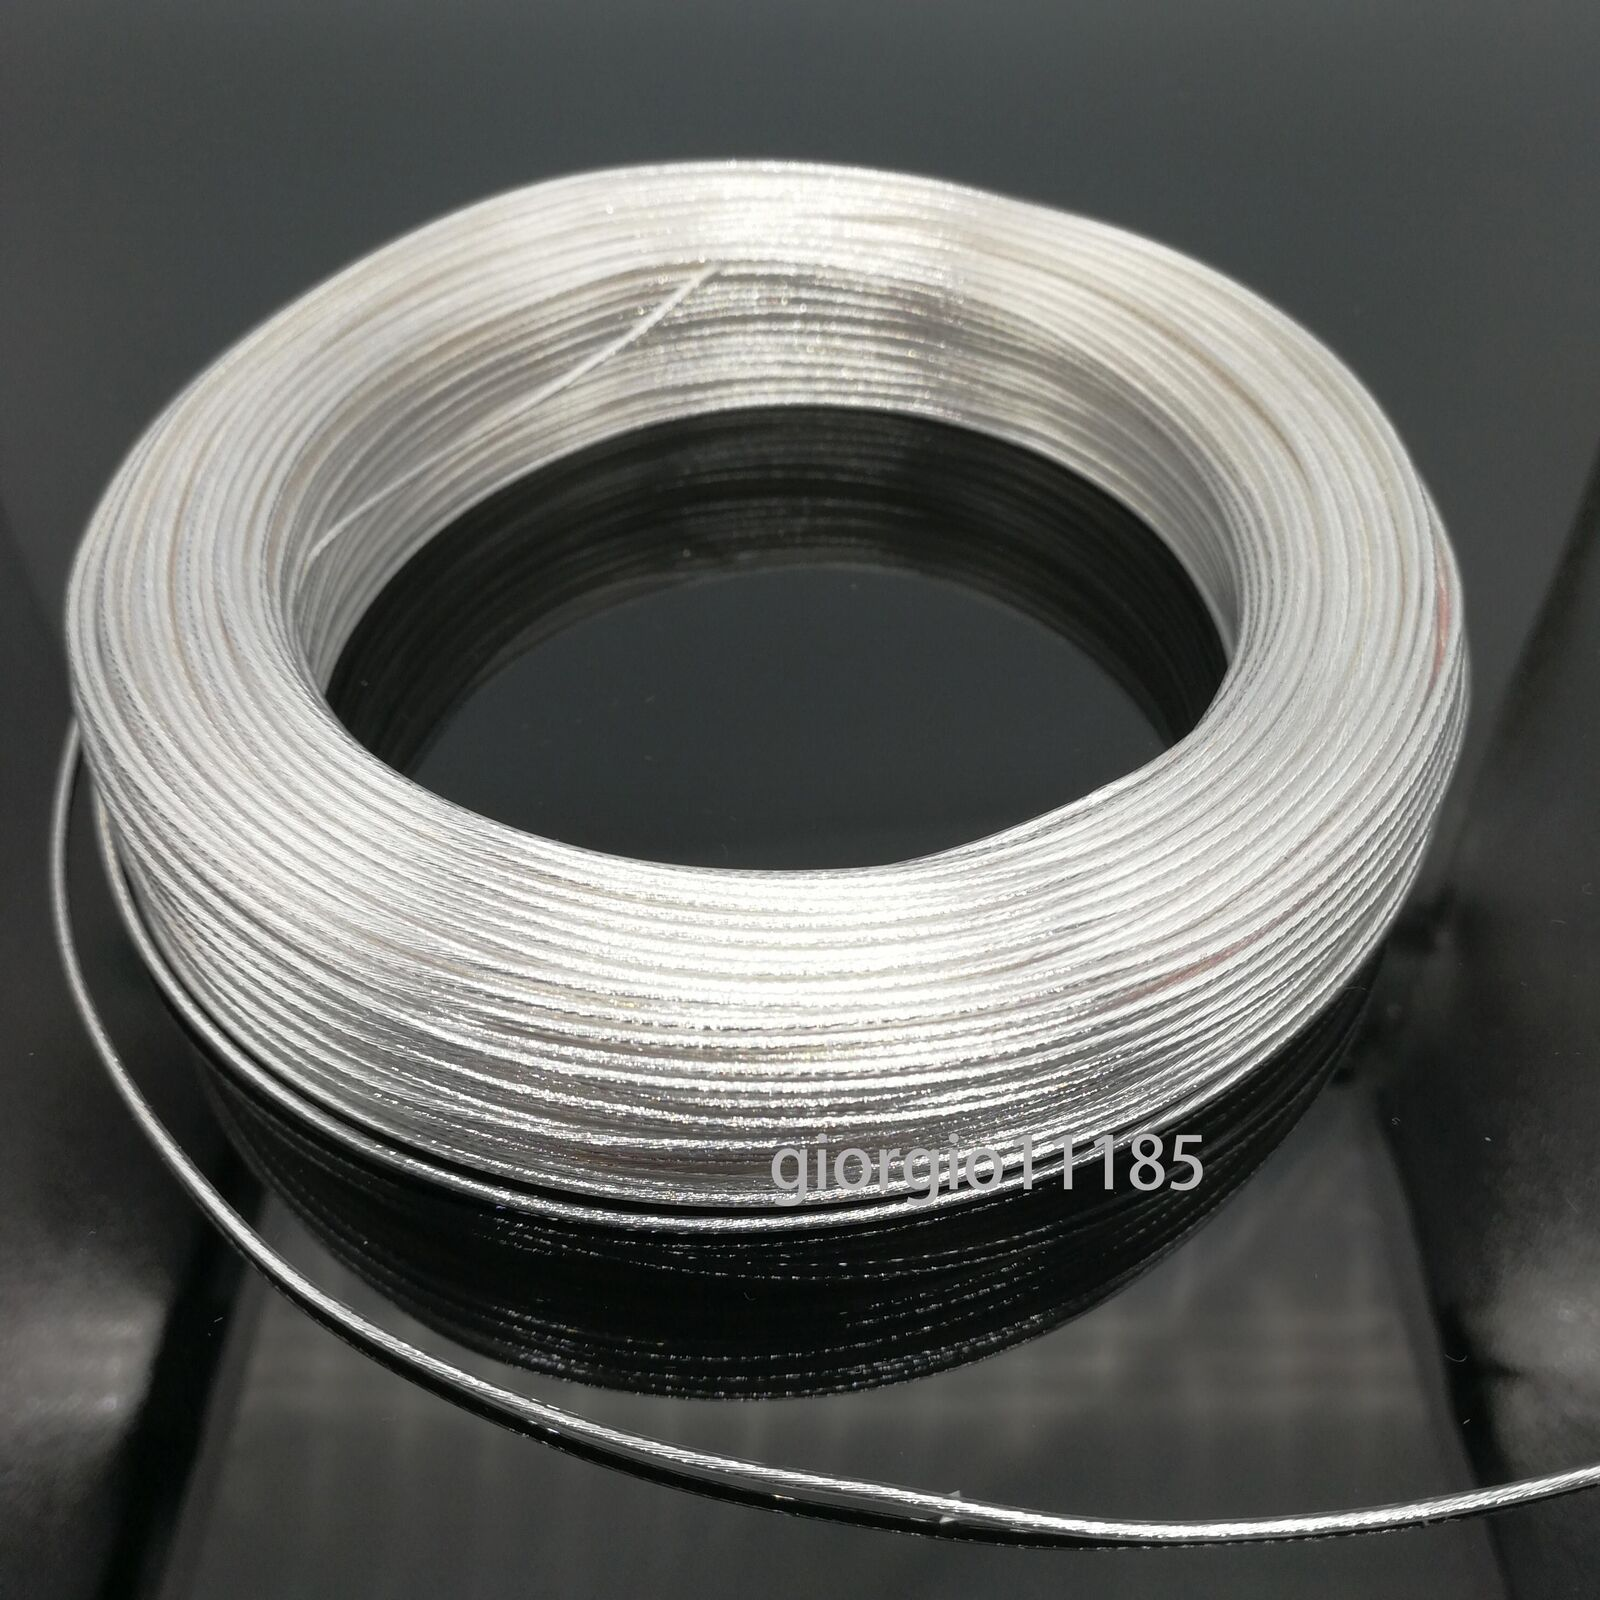 US STOCK 40 Feet 26 AWG High Temperature Teflon PTFE Silver Plated ...